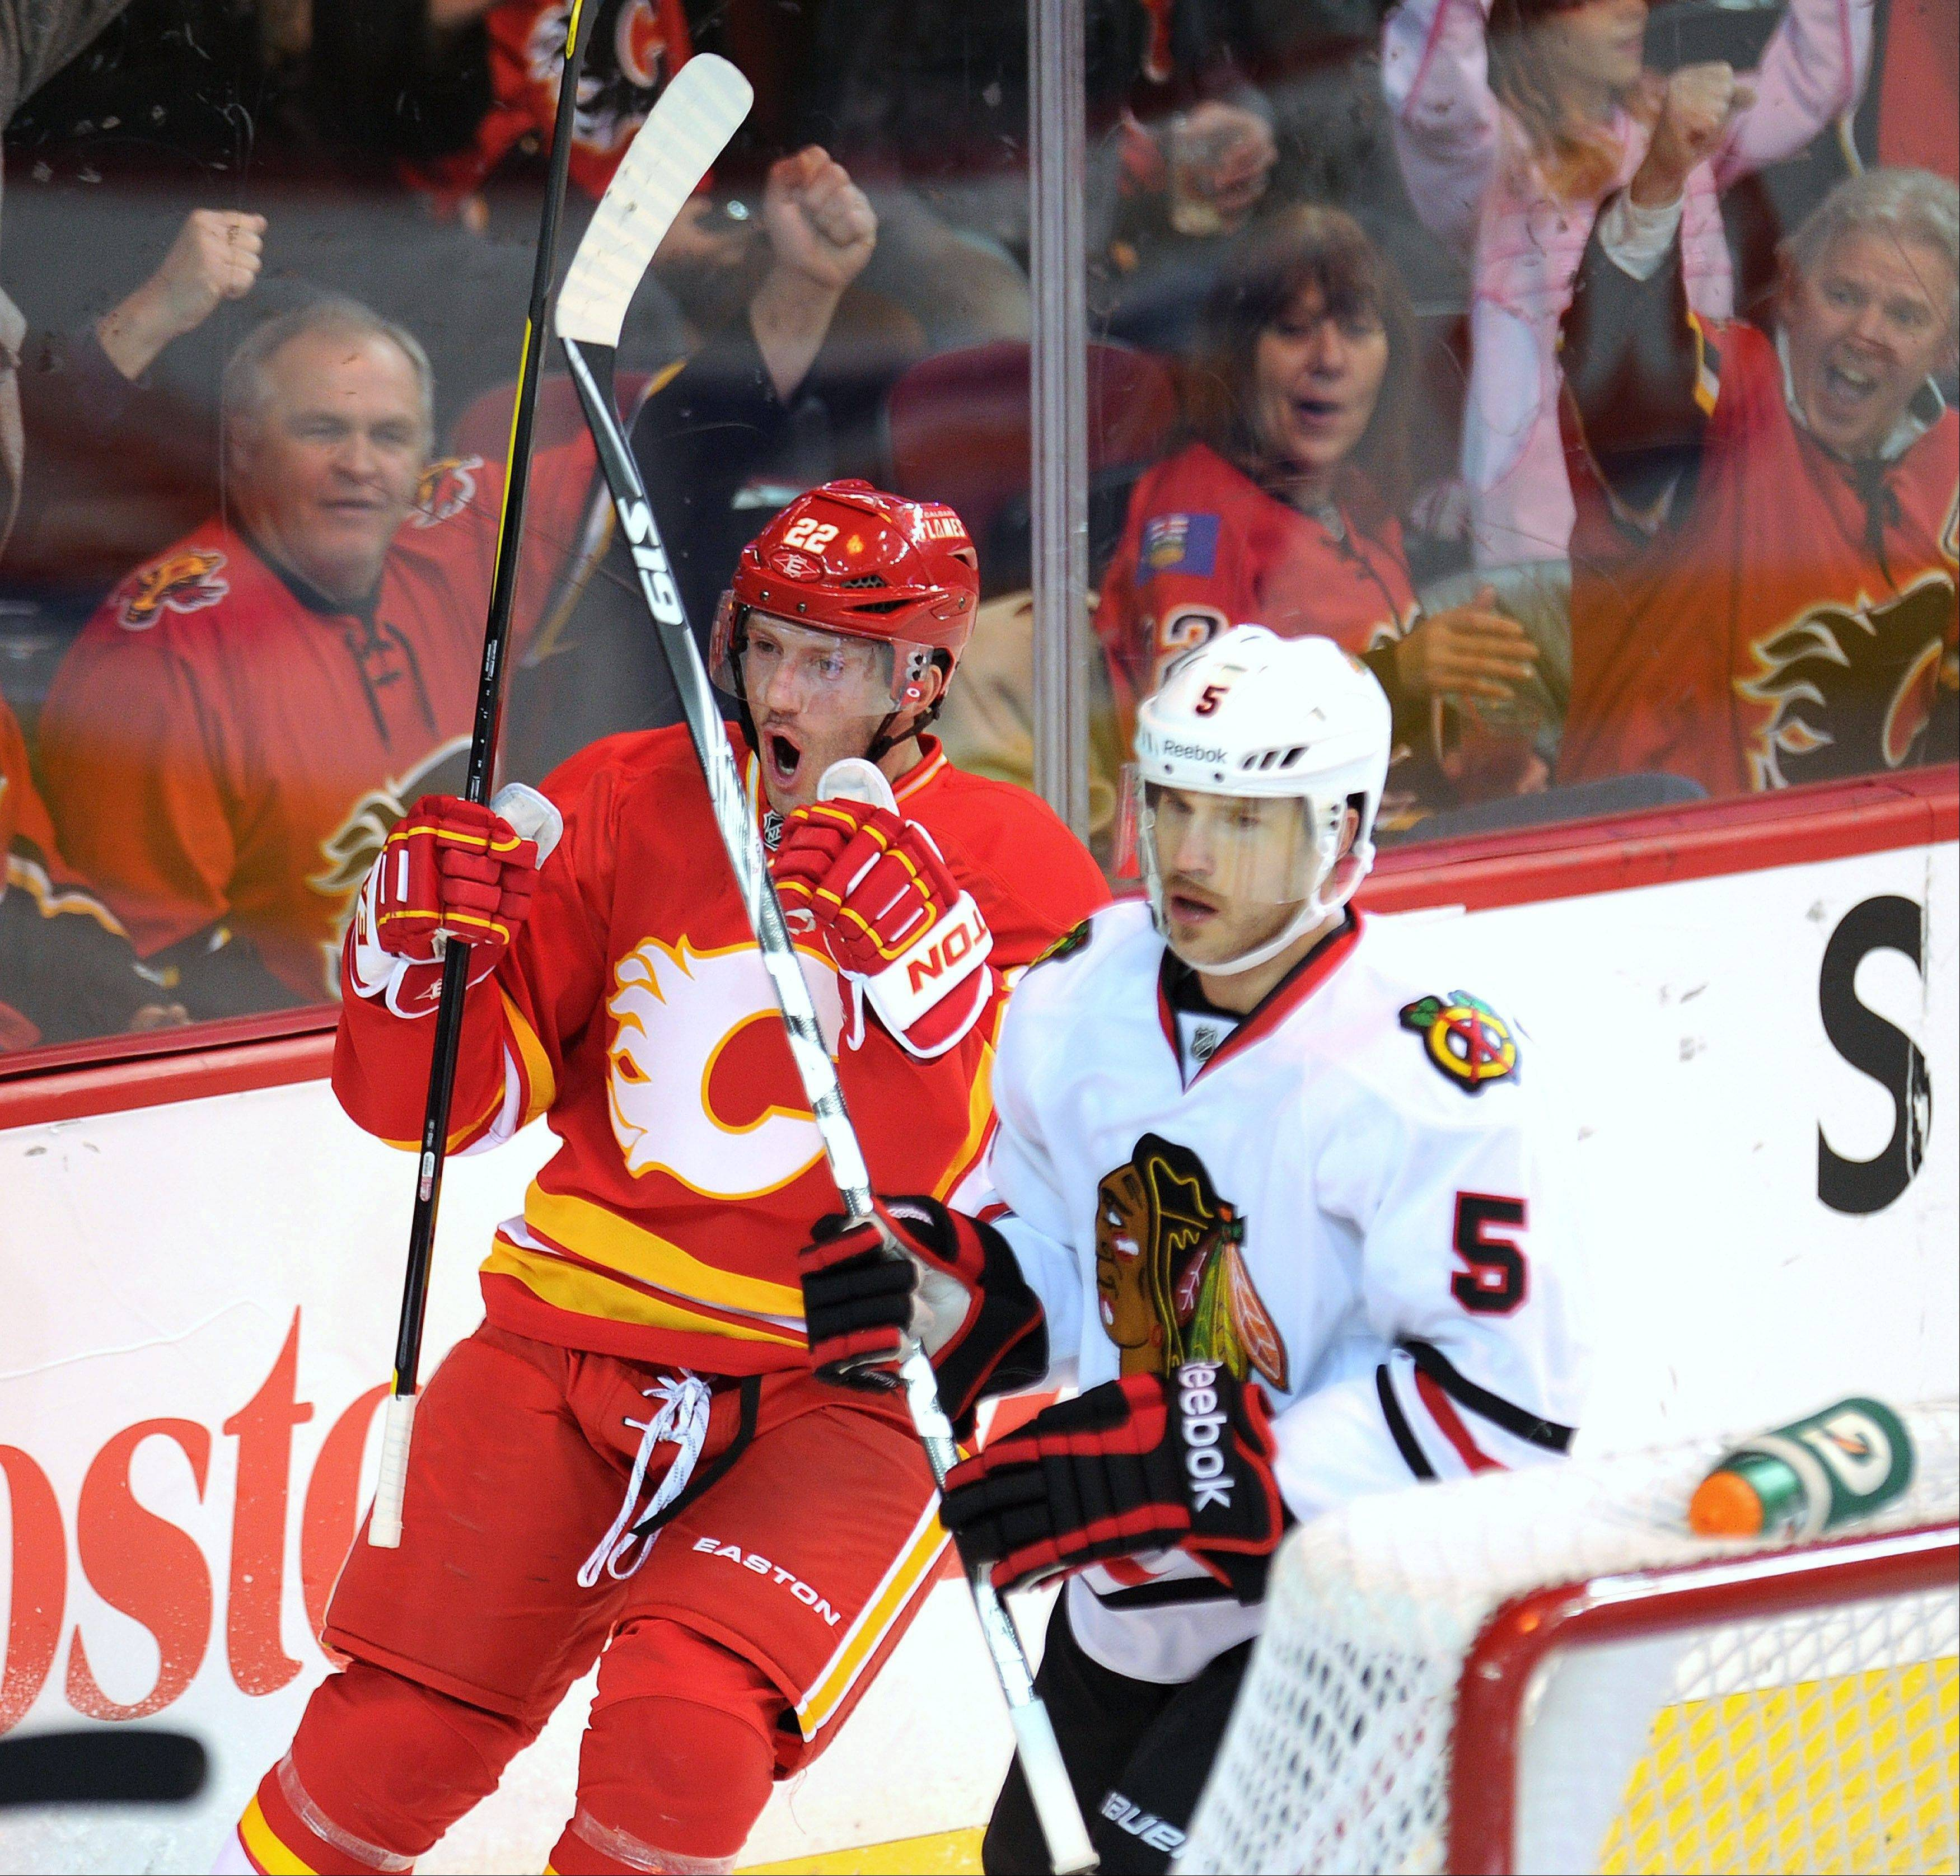 Calgary Flames' Lee Stempniak, left, celebrates a goal as he passes Chicago Blackhawks' Steve Montindor during the first period of an NHL hockey game, Friday, Nov. 18, 2011, in Calgary, Alberta.